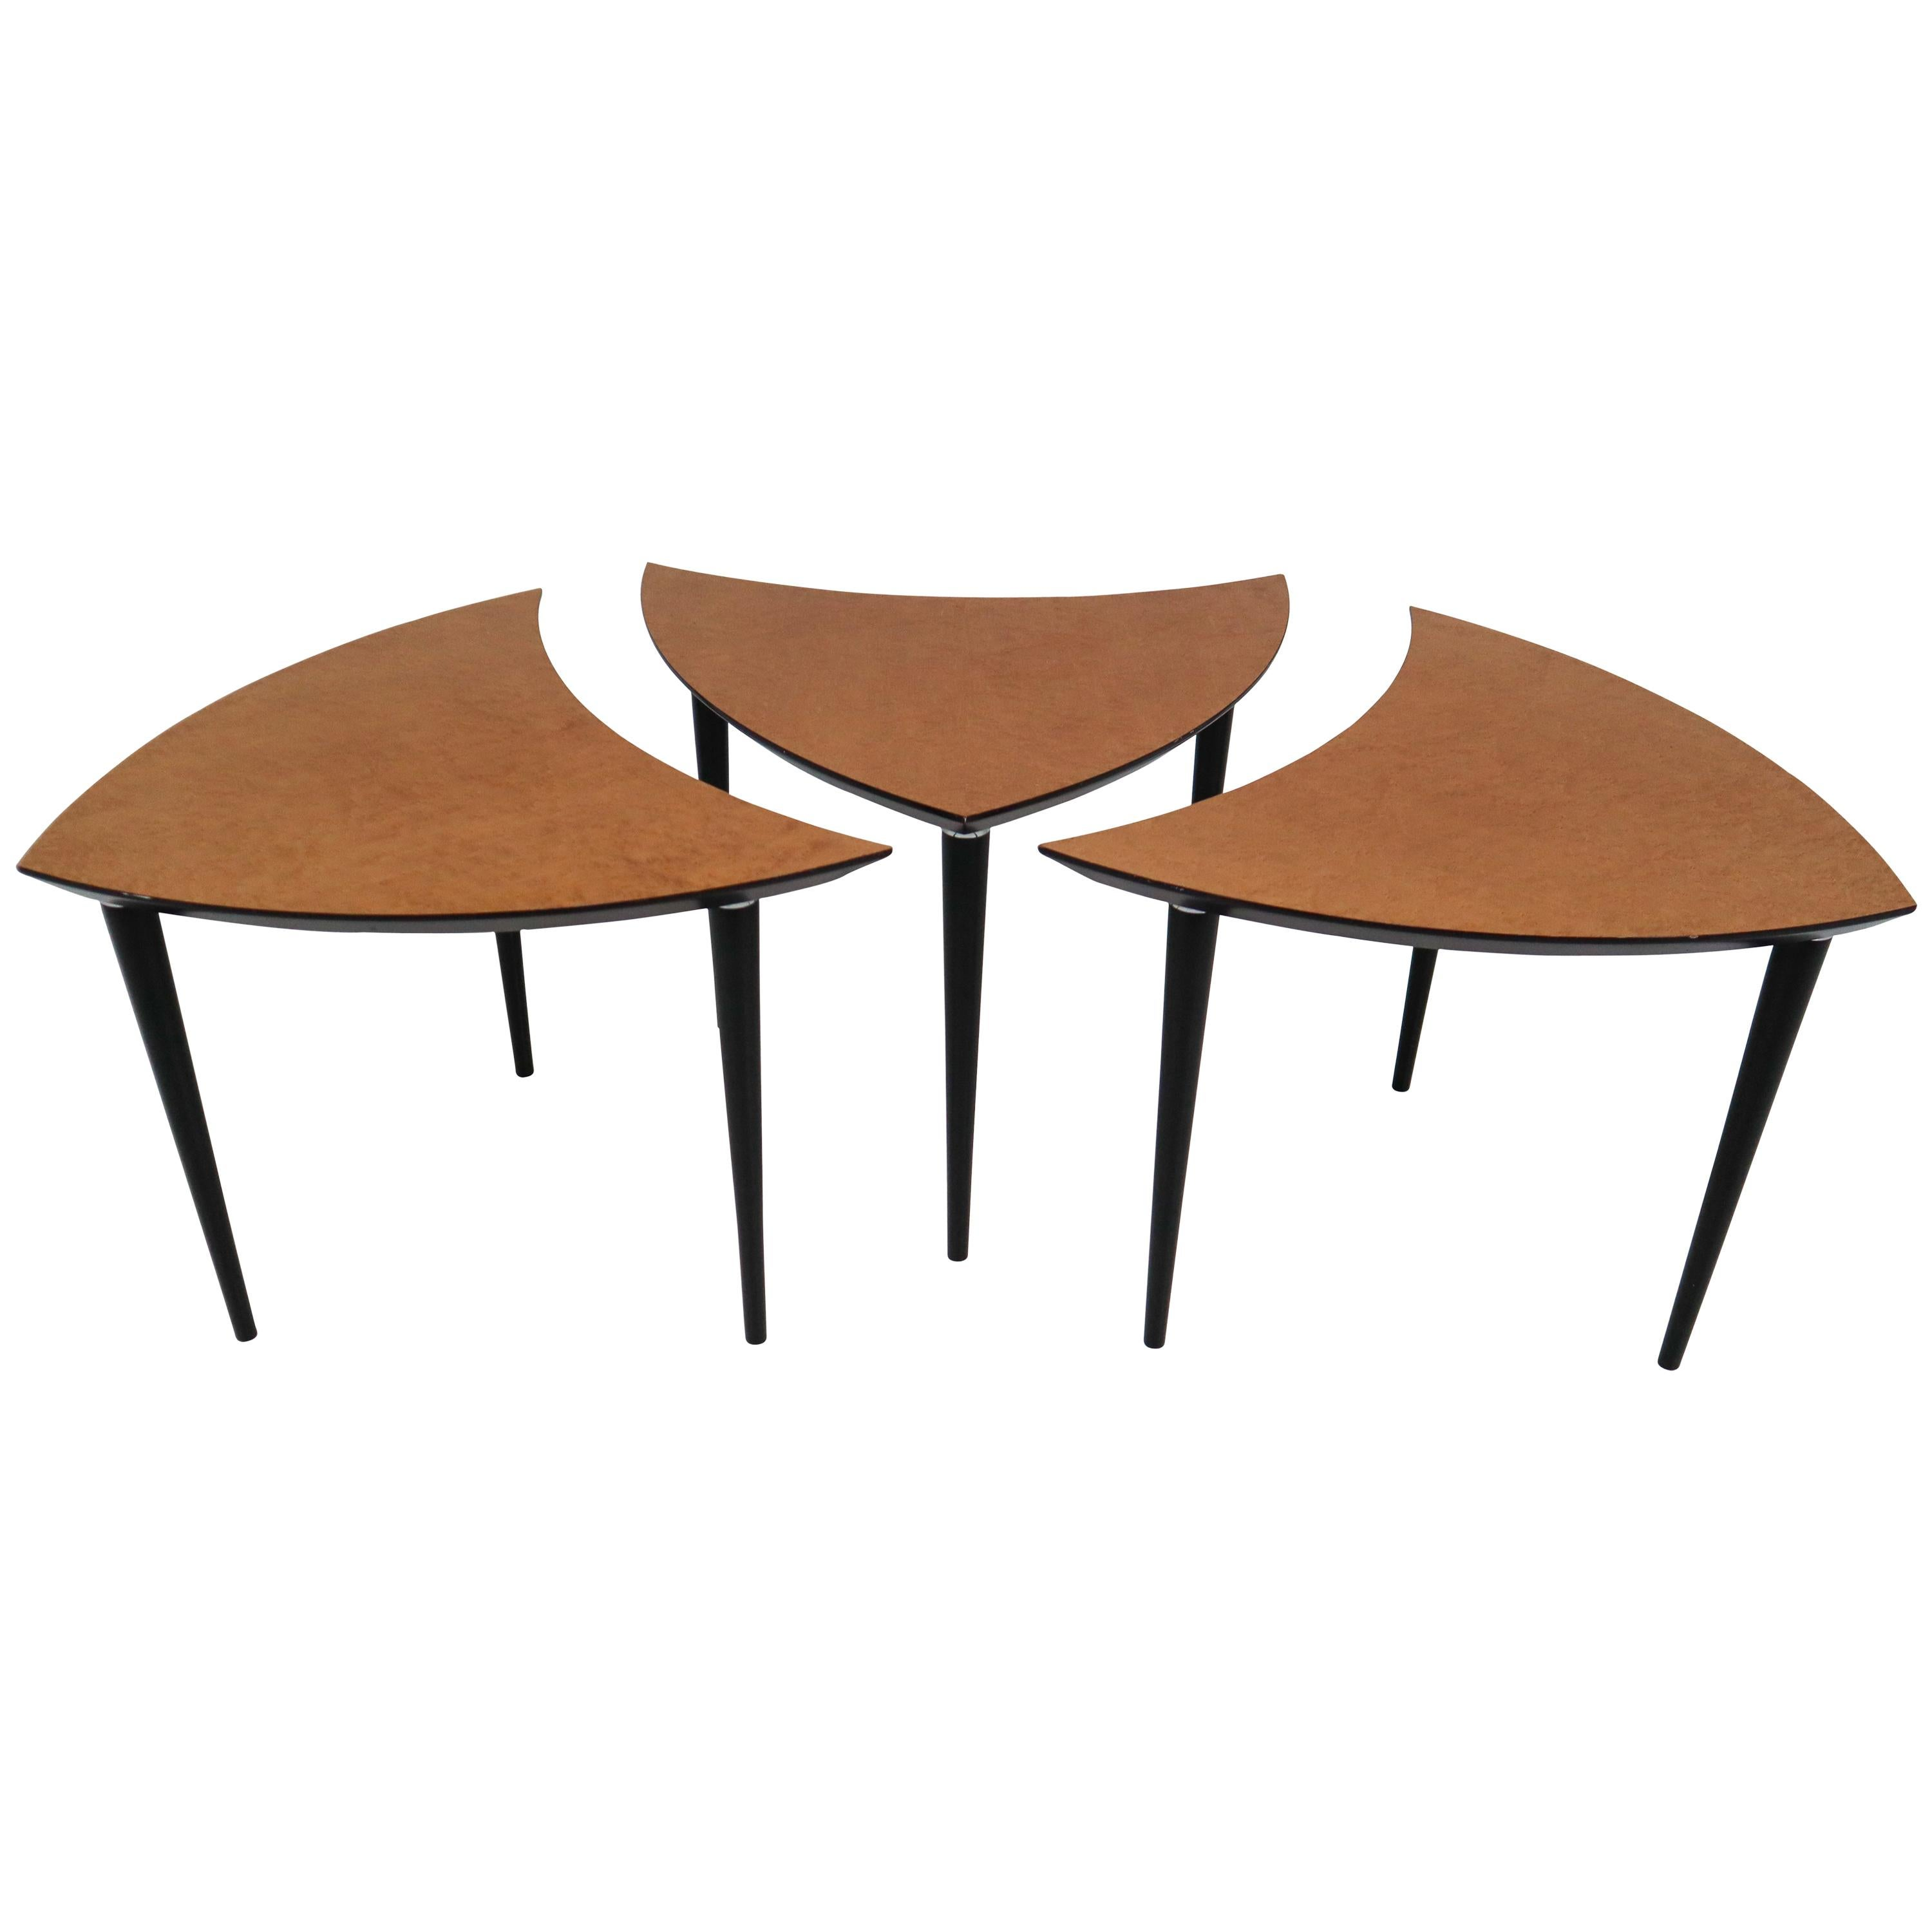 1960 Small Italian Triangle Shaped Coffee Tables For Sale